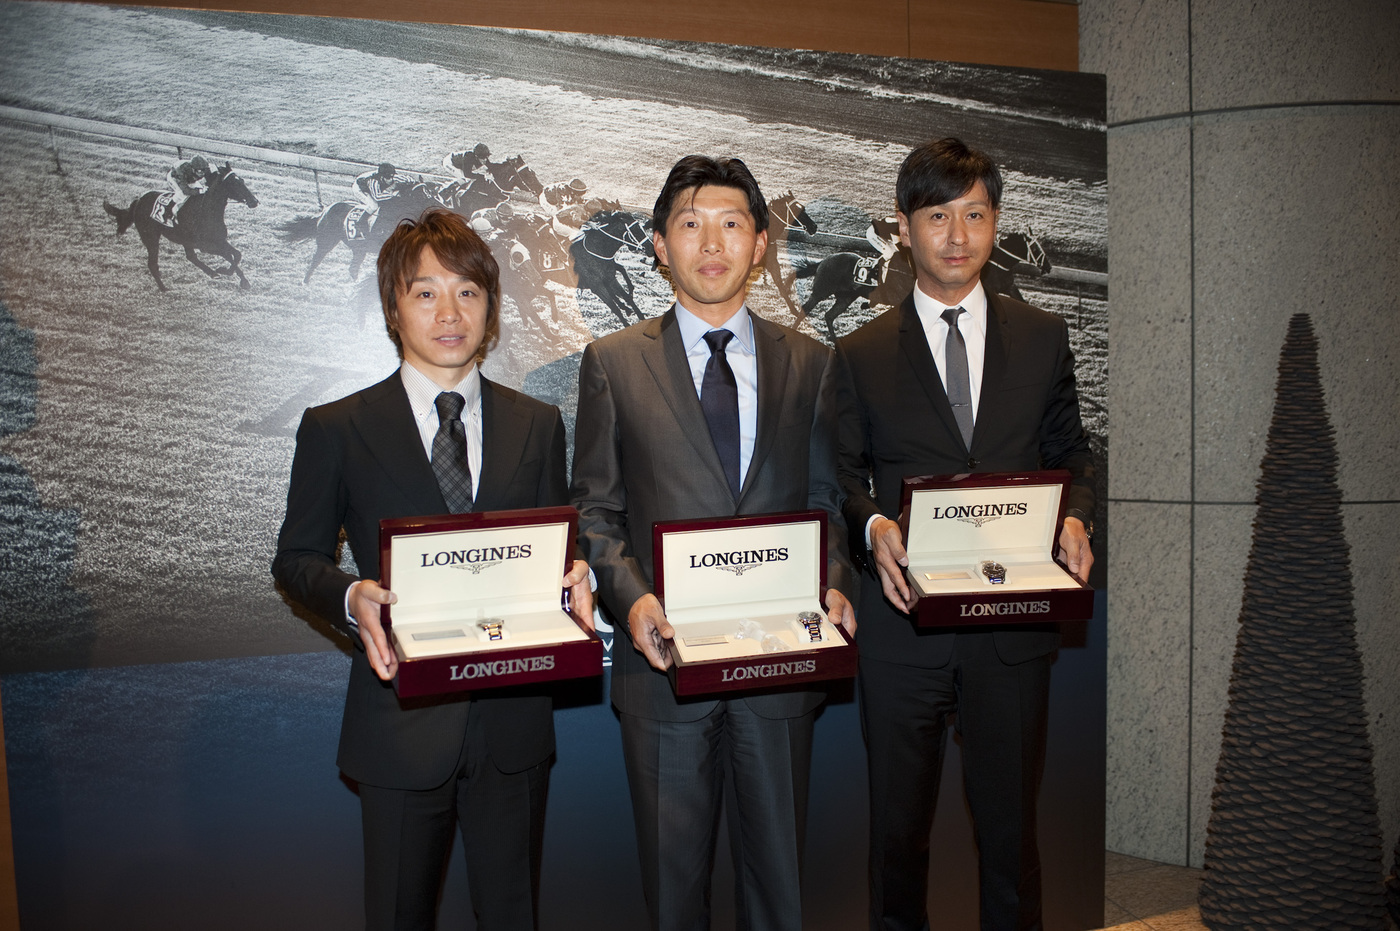 Longines Flat Racing Event: Longines and the International Federation of Horseracing Authorities (IFHA) honoured ORFEVRE as the co-third highest-rated horse in the world for 2013 5